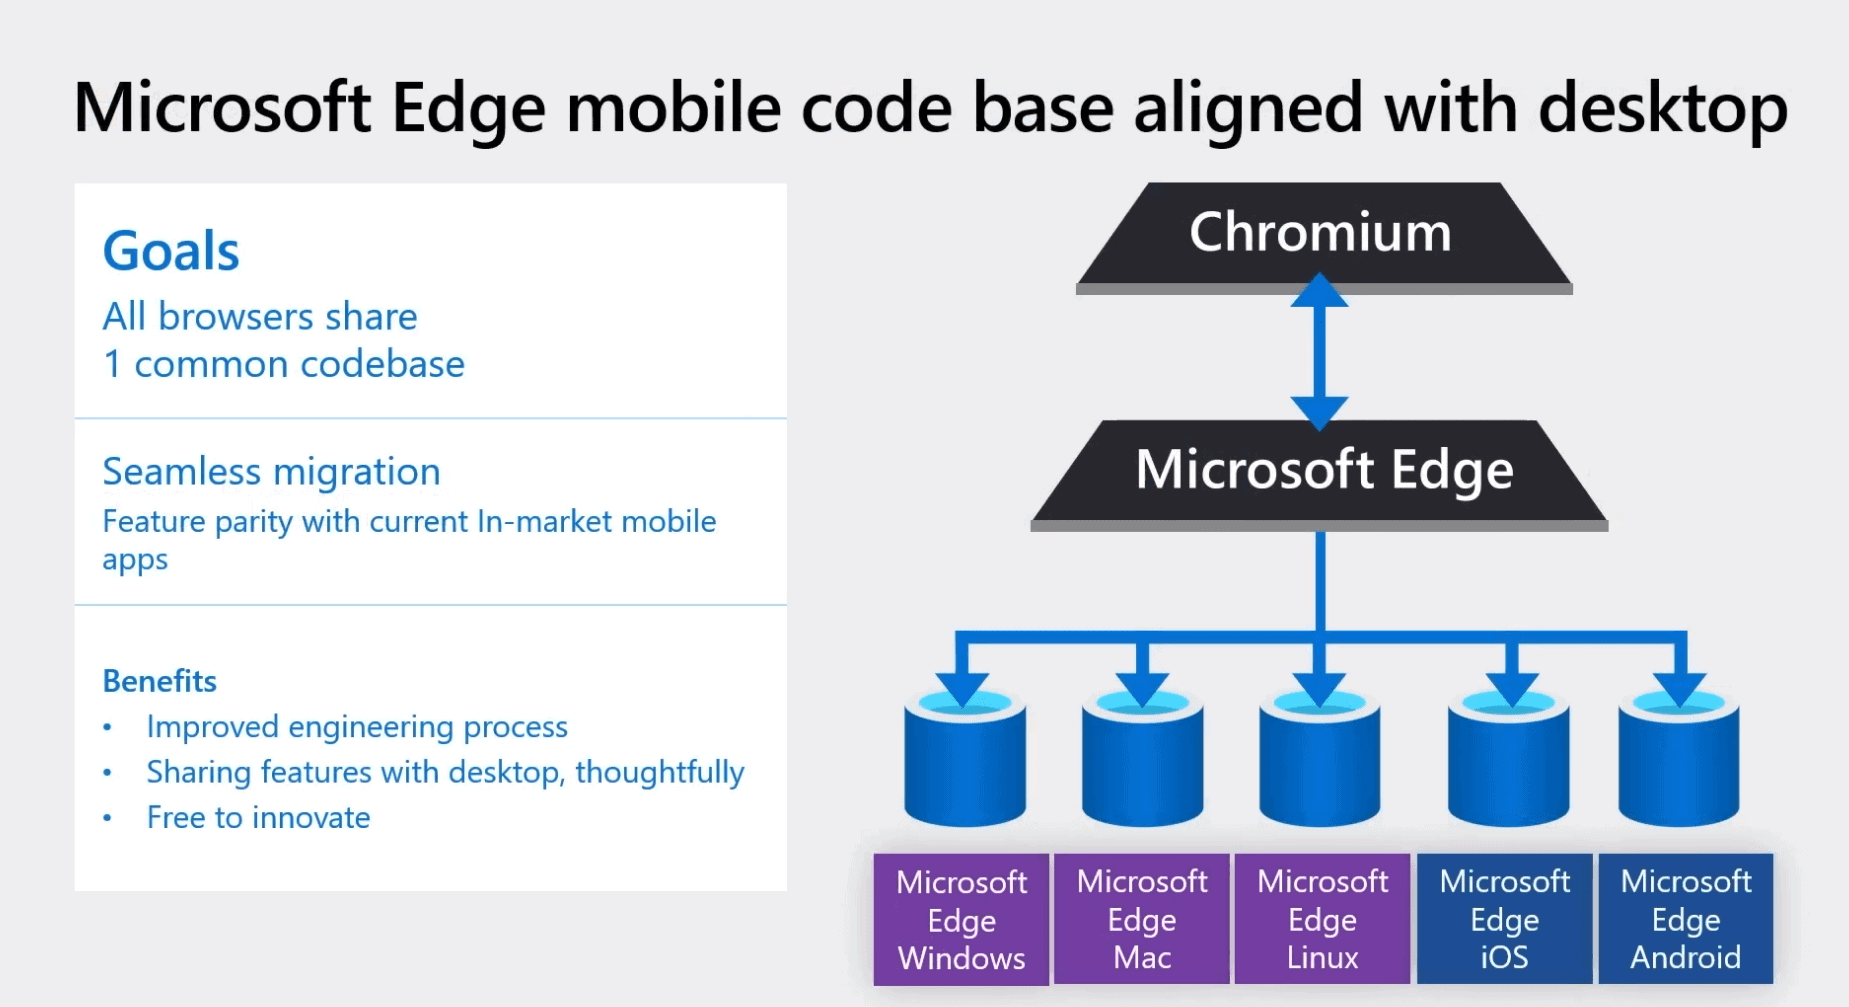 Microsoft plans to align all Edge codebases later this year